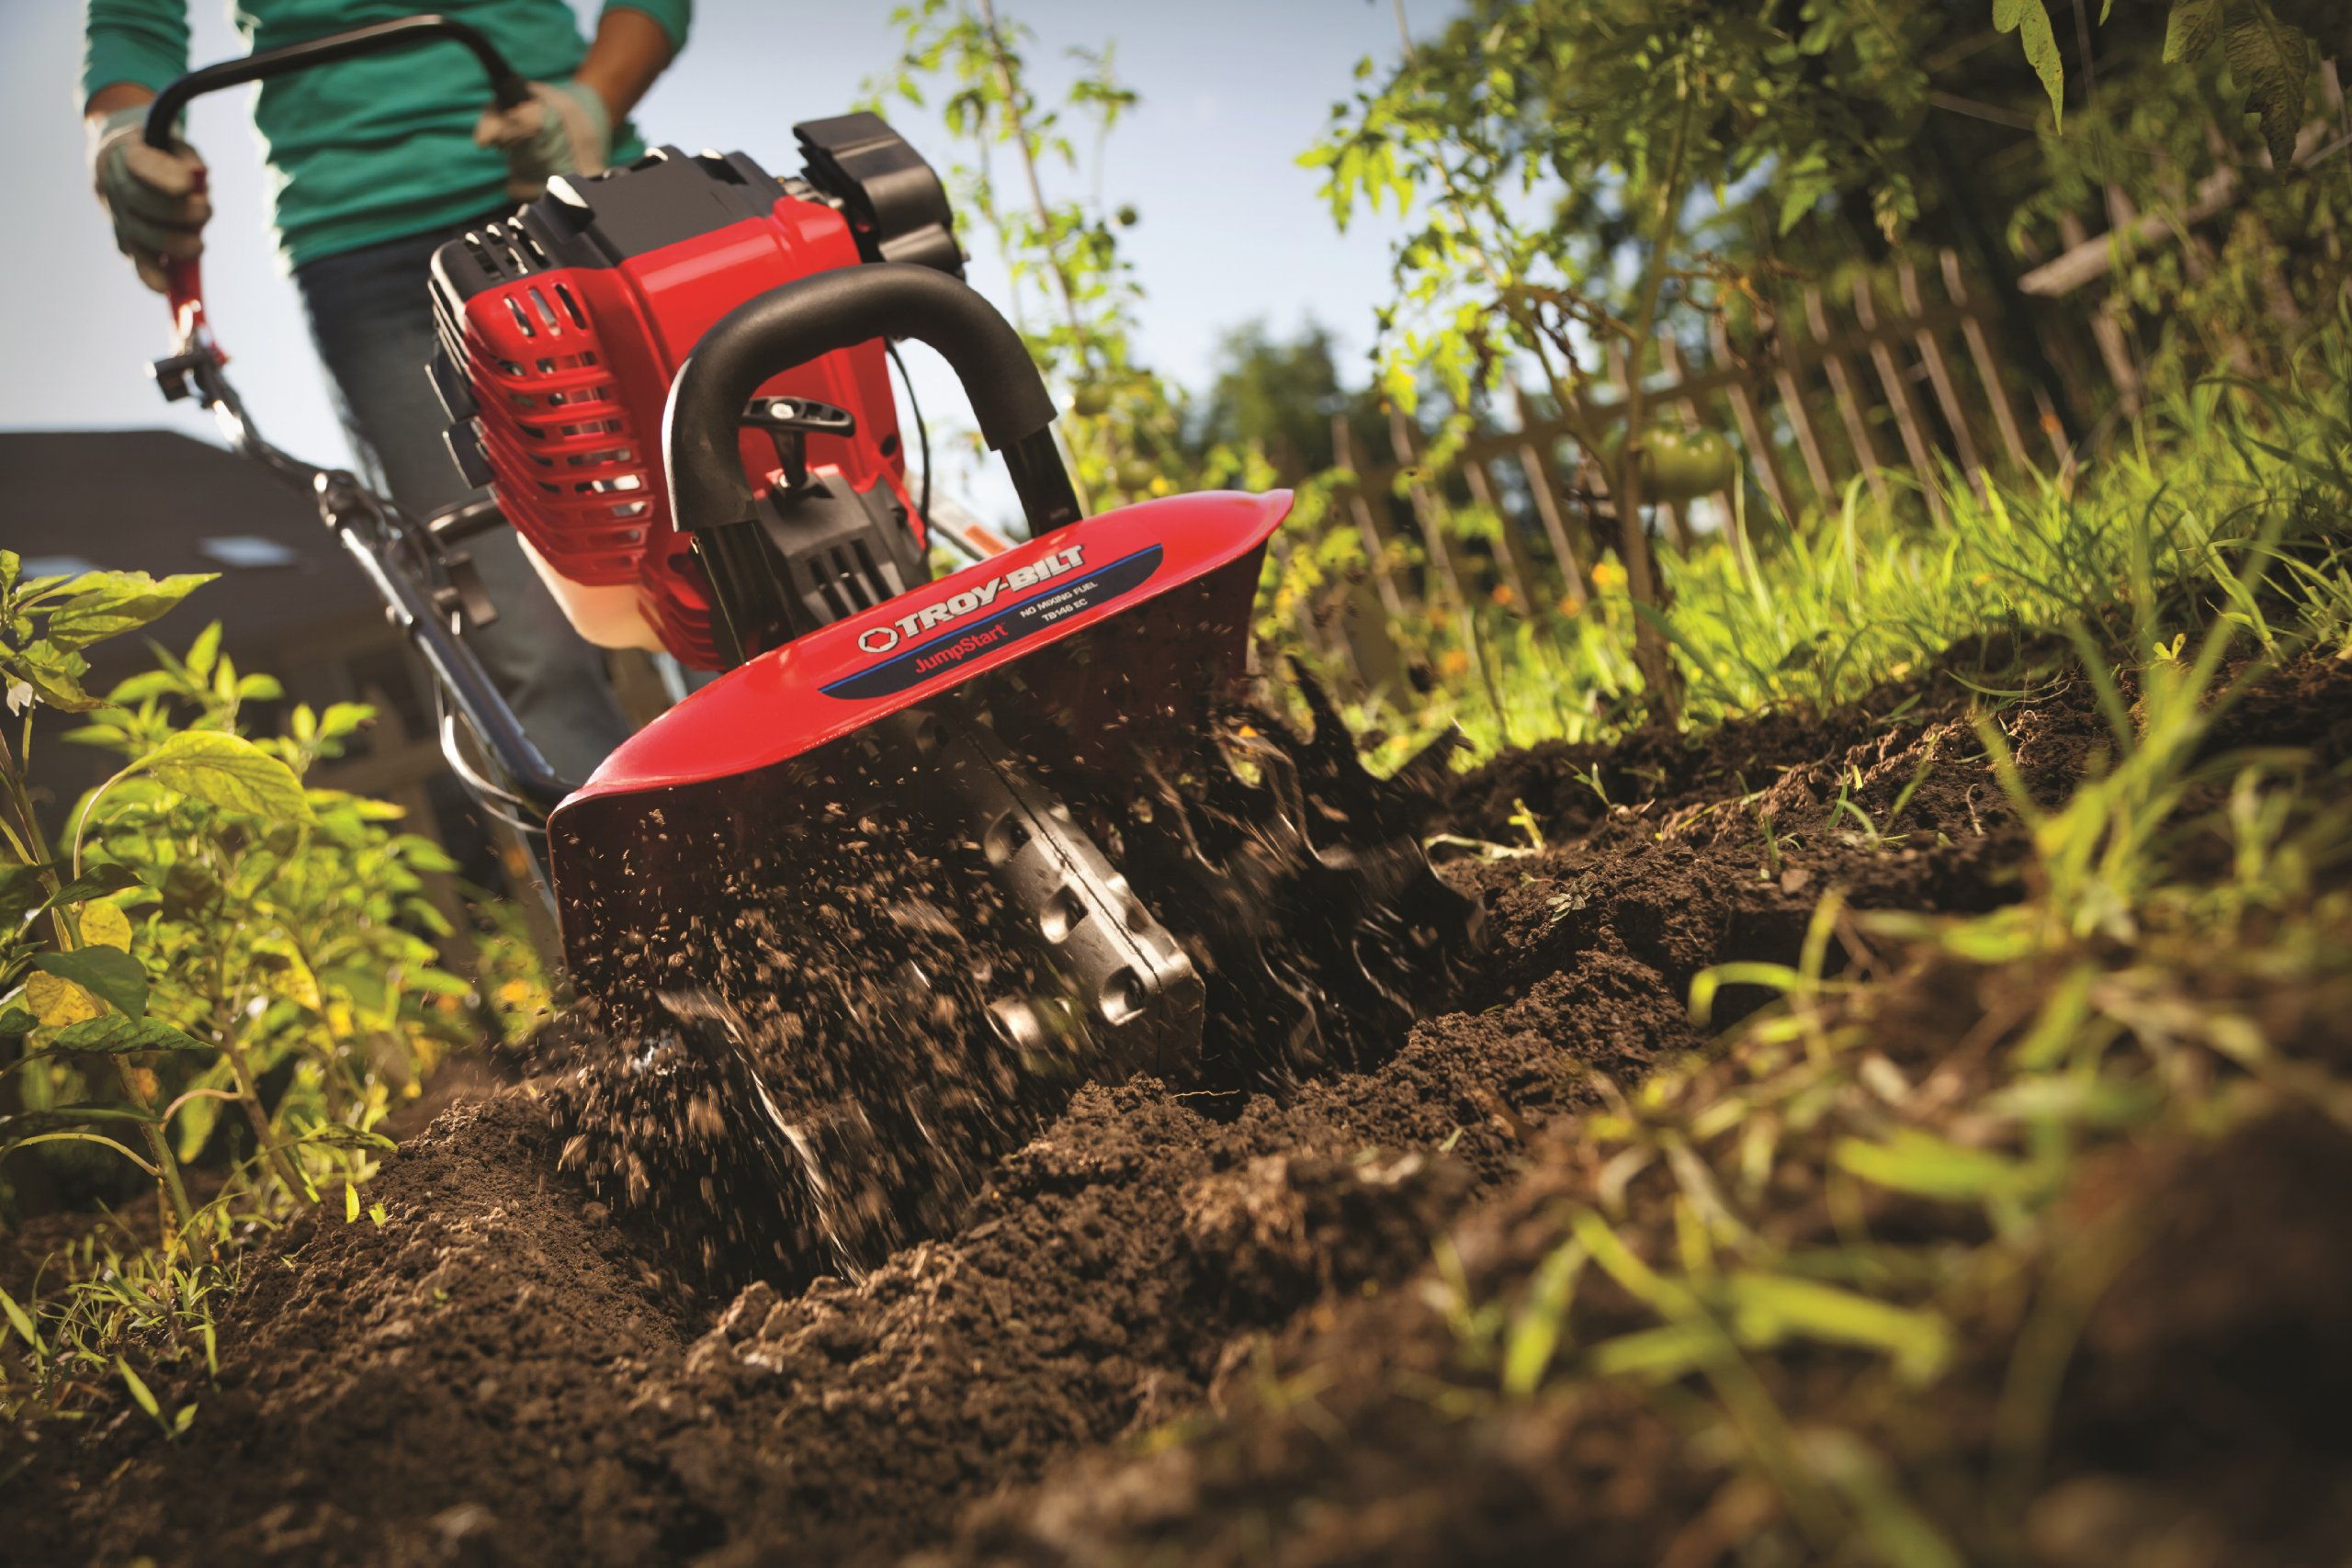 Troy-Bilt TB146 EC 29cc 4-Cycle Cultivator with JumpStart Technology by Troy-Bilt (Image #5)